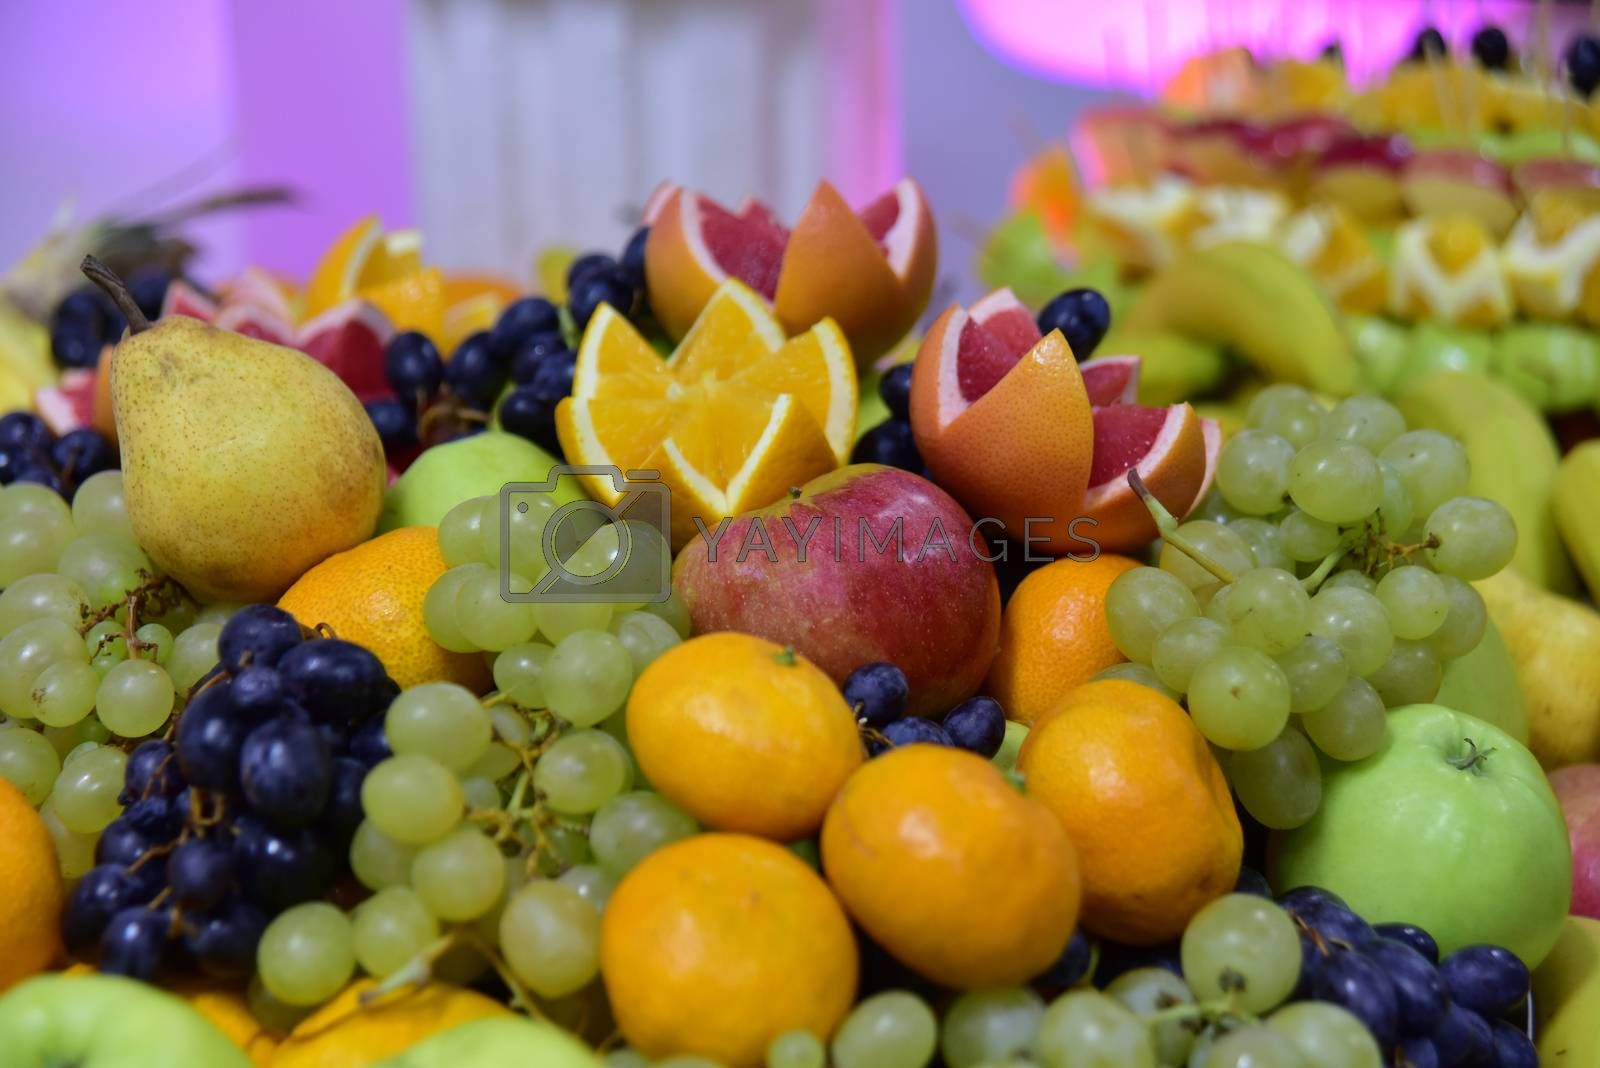 Royalty free image of Organic fruits. Healthy eating concept. by aselsa